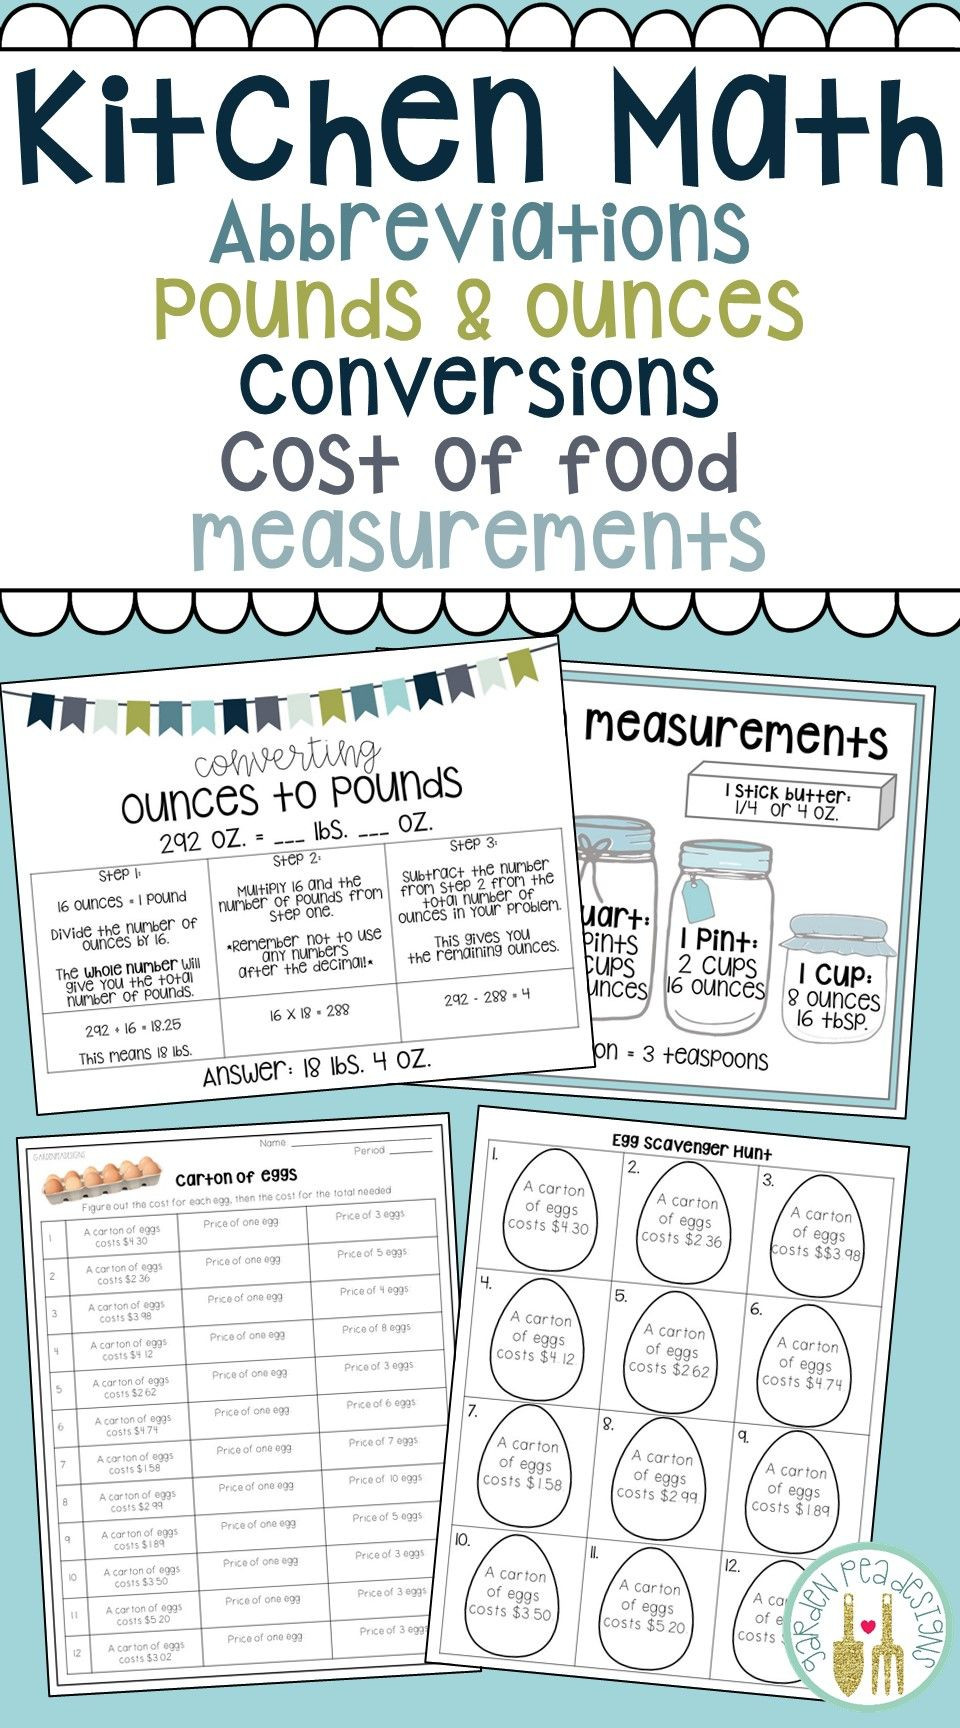 Restaurant Math Worksheets $5 00 Teach Kitchen Abbreviations How to Convert Pounds to